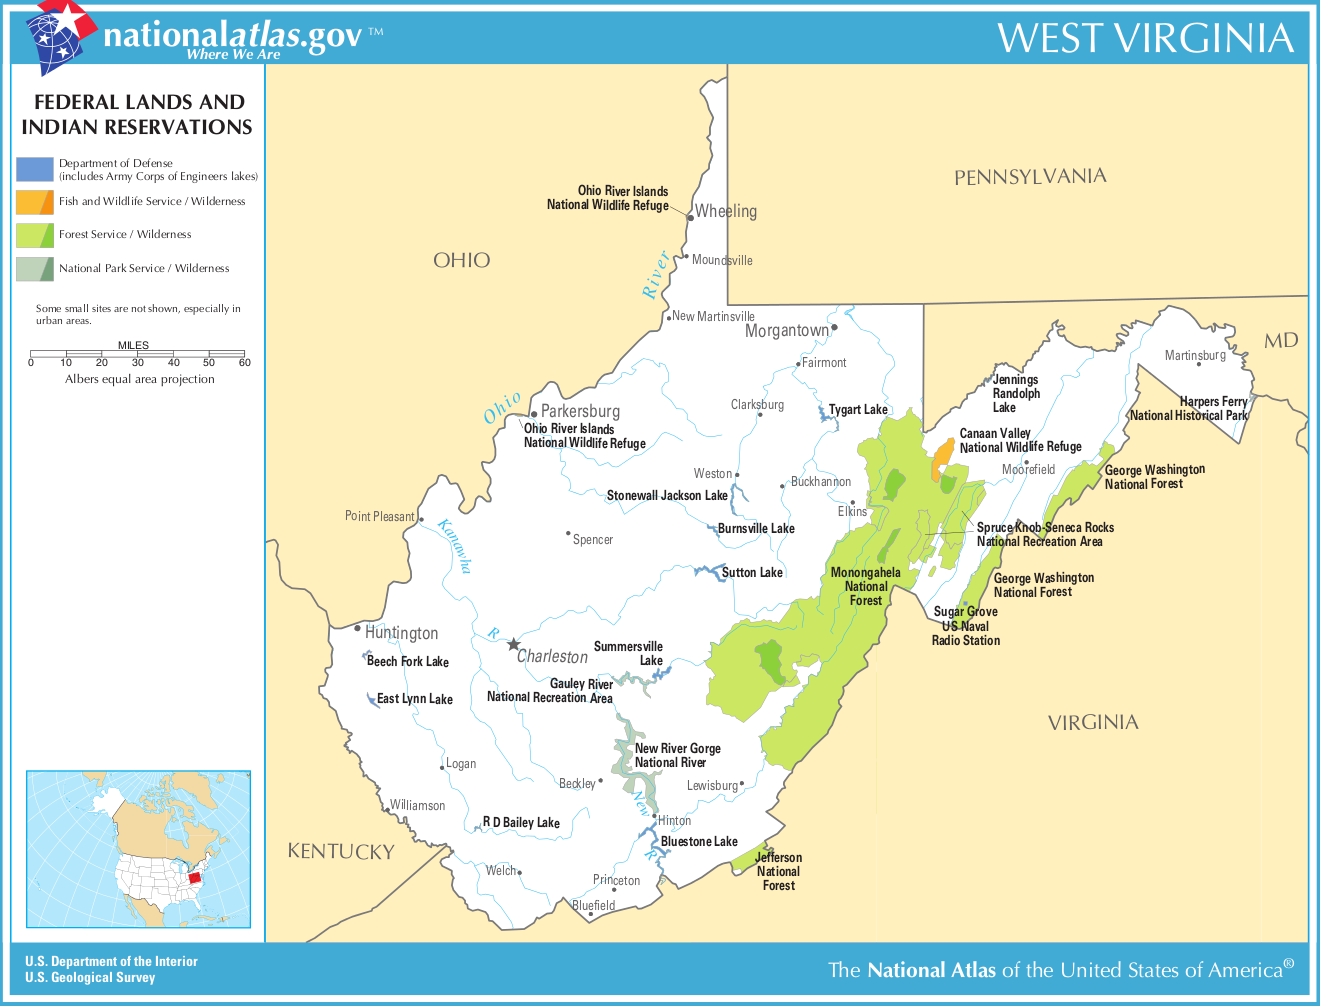 Map of West Virginia (Map Federal Lands and Indian ... Canaan Valley West Virginia Map on blacks run virginia map, valley west virginia state map, canaan valley state park map, seneca creek geologic map, 495 potomac river map, valley of s in west virginia map, canaan valley directions, canaan valley trail map, canaan valley attractions, blackwater va map, old timberline wv map, west coast of california map, canaan valley resort wv, shenandoah valley west virginia map, blackwater falls state map, canaan mountain ski map, canaan valley national wildlife refuge map, blackwater state park map, shenandoah mountains map,